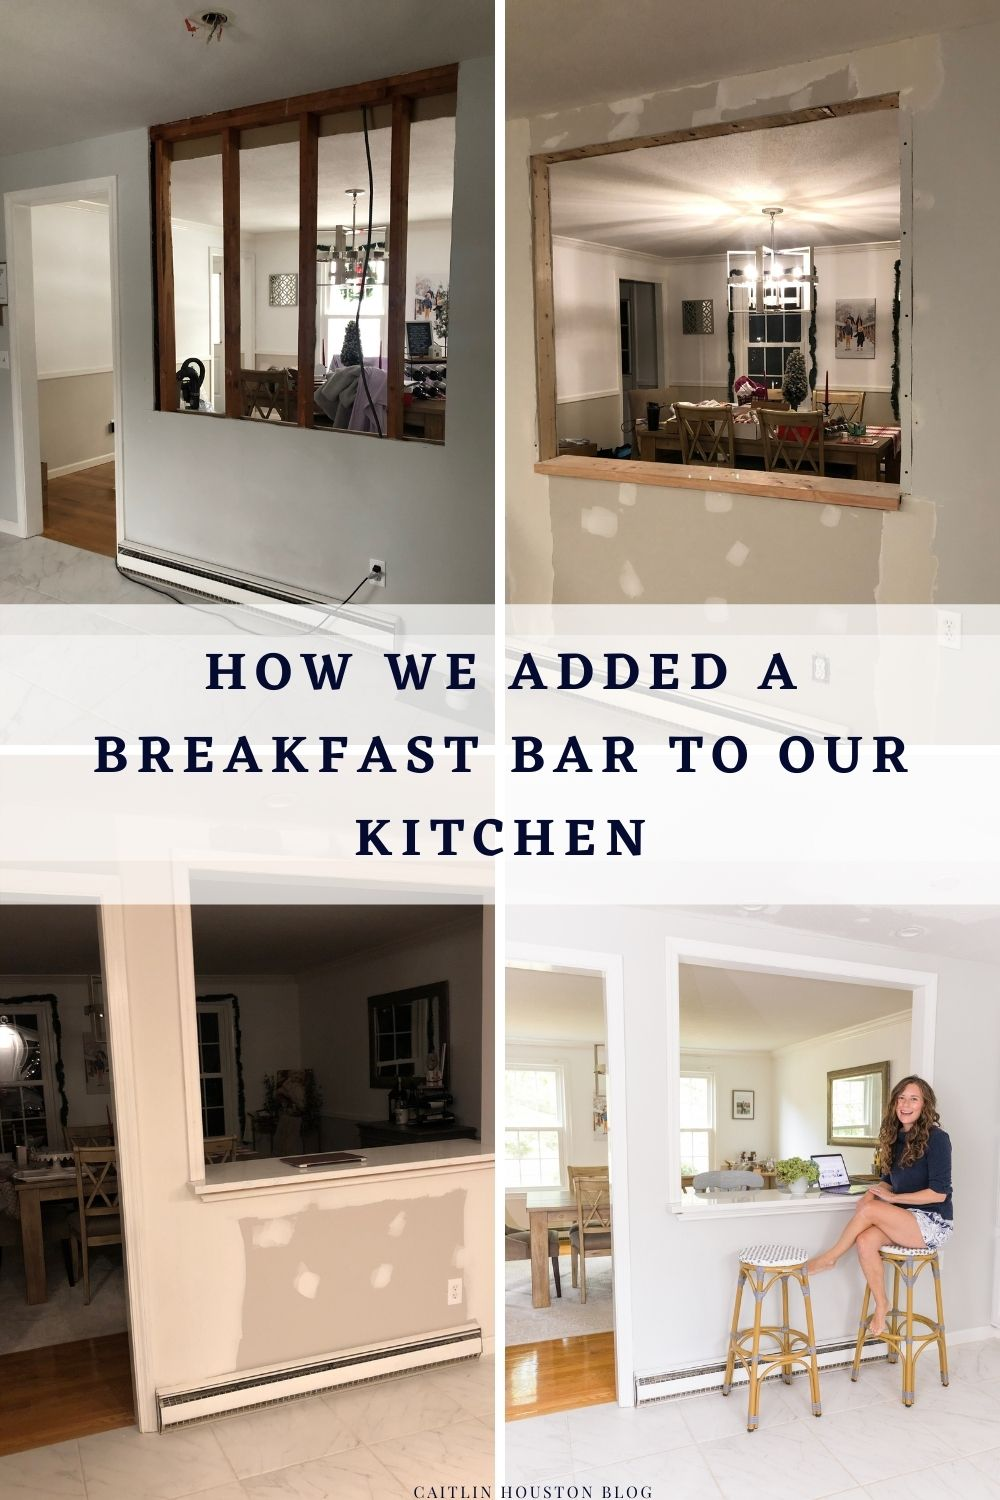 How We Knocked Down the Wall in the Kitchen to Make a Breakfast Bar